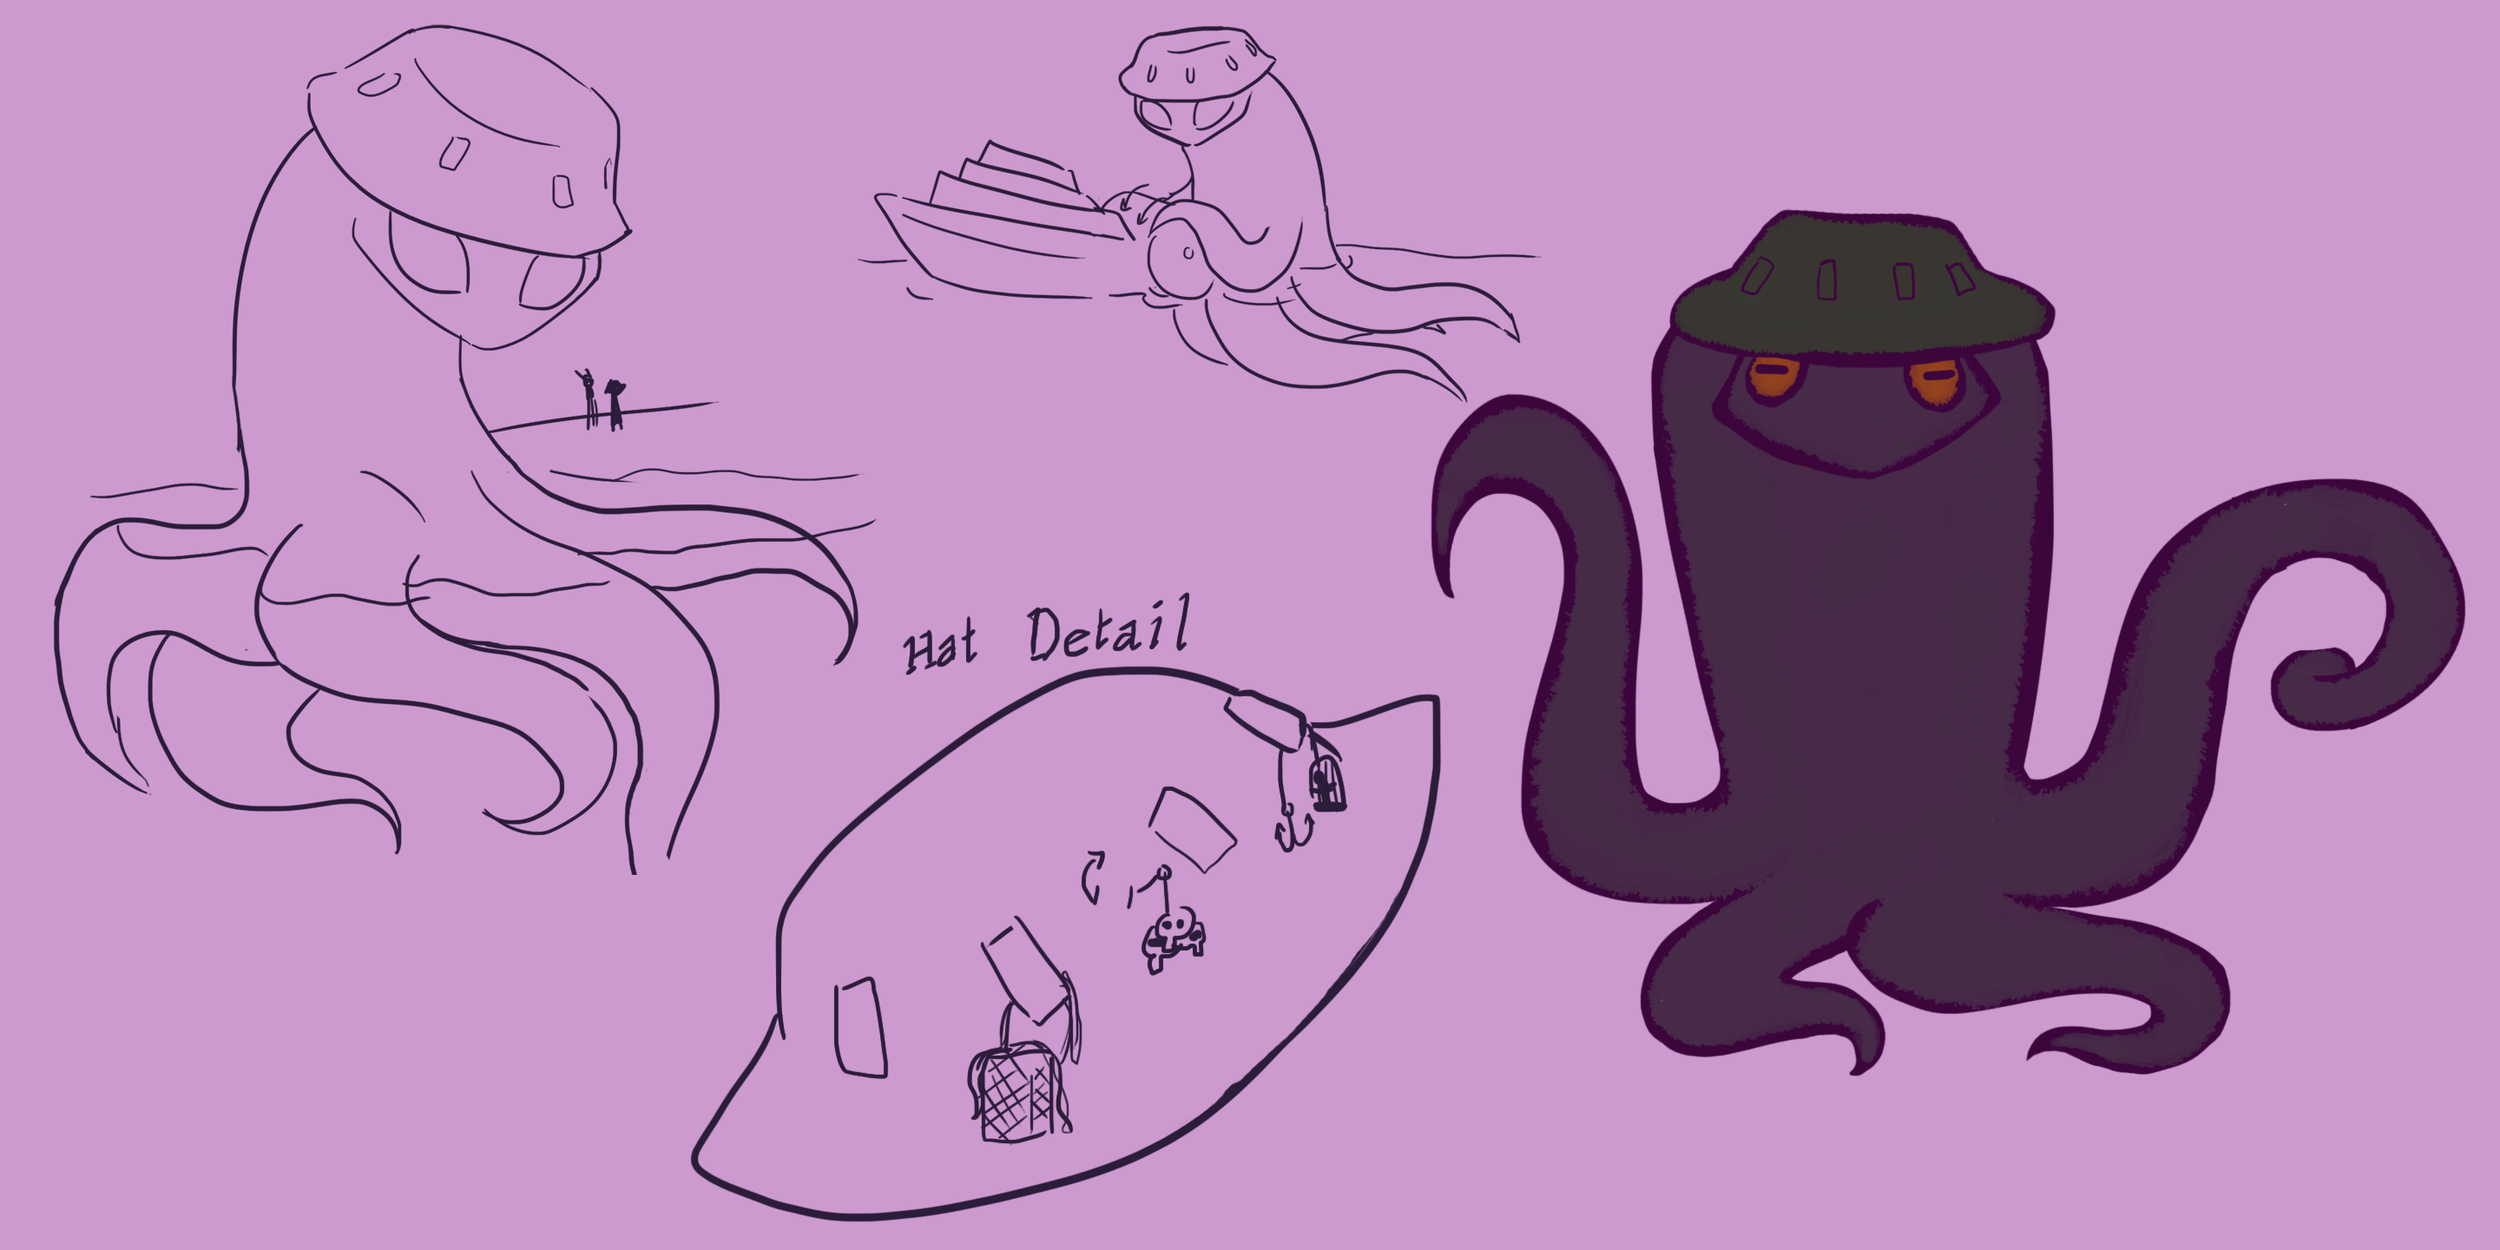 The Boatman Character Ref.